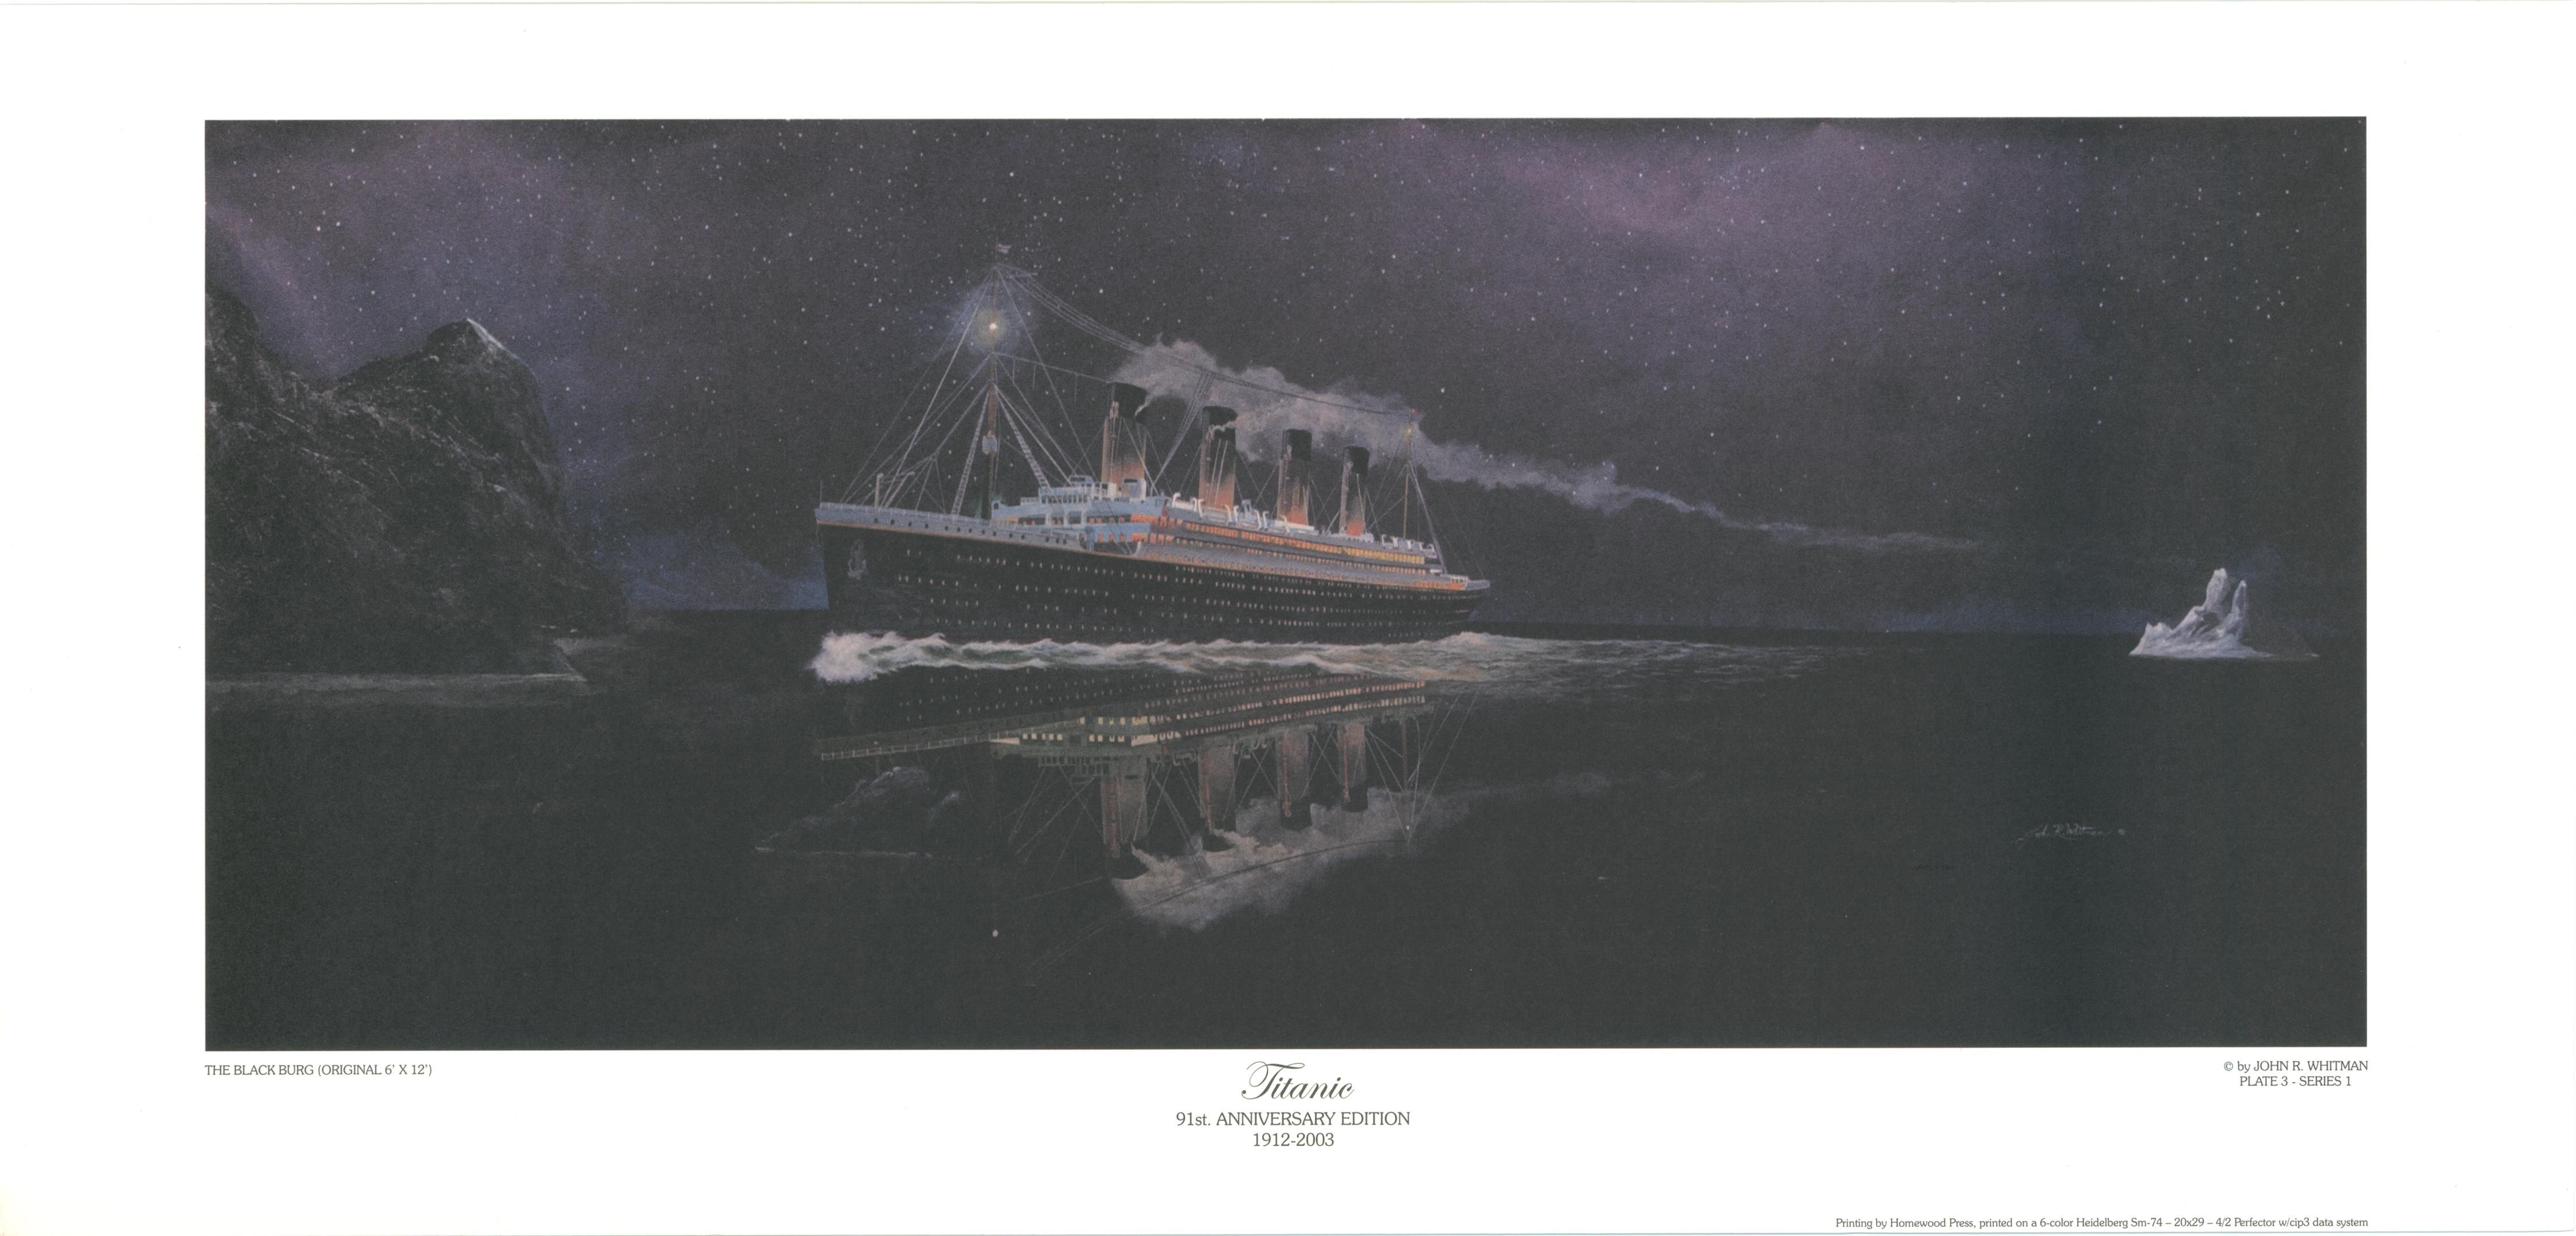 How the 'blackberg' was envisioned by an illustrator.  A blackberry, greenberg or blueberg is an iceberg that is difficult to see because it is clear. These are more common in April when the icebergs melt. Yet another reason, ignoring iceberg warnings in order to make record speed was such a brilliant idea. #Titanic #History